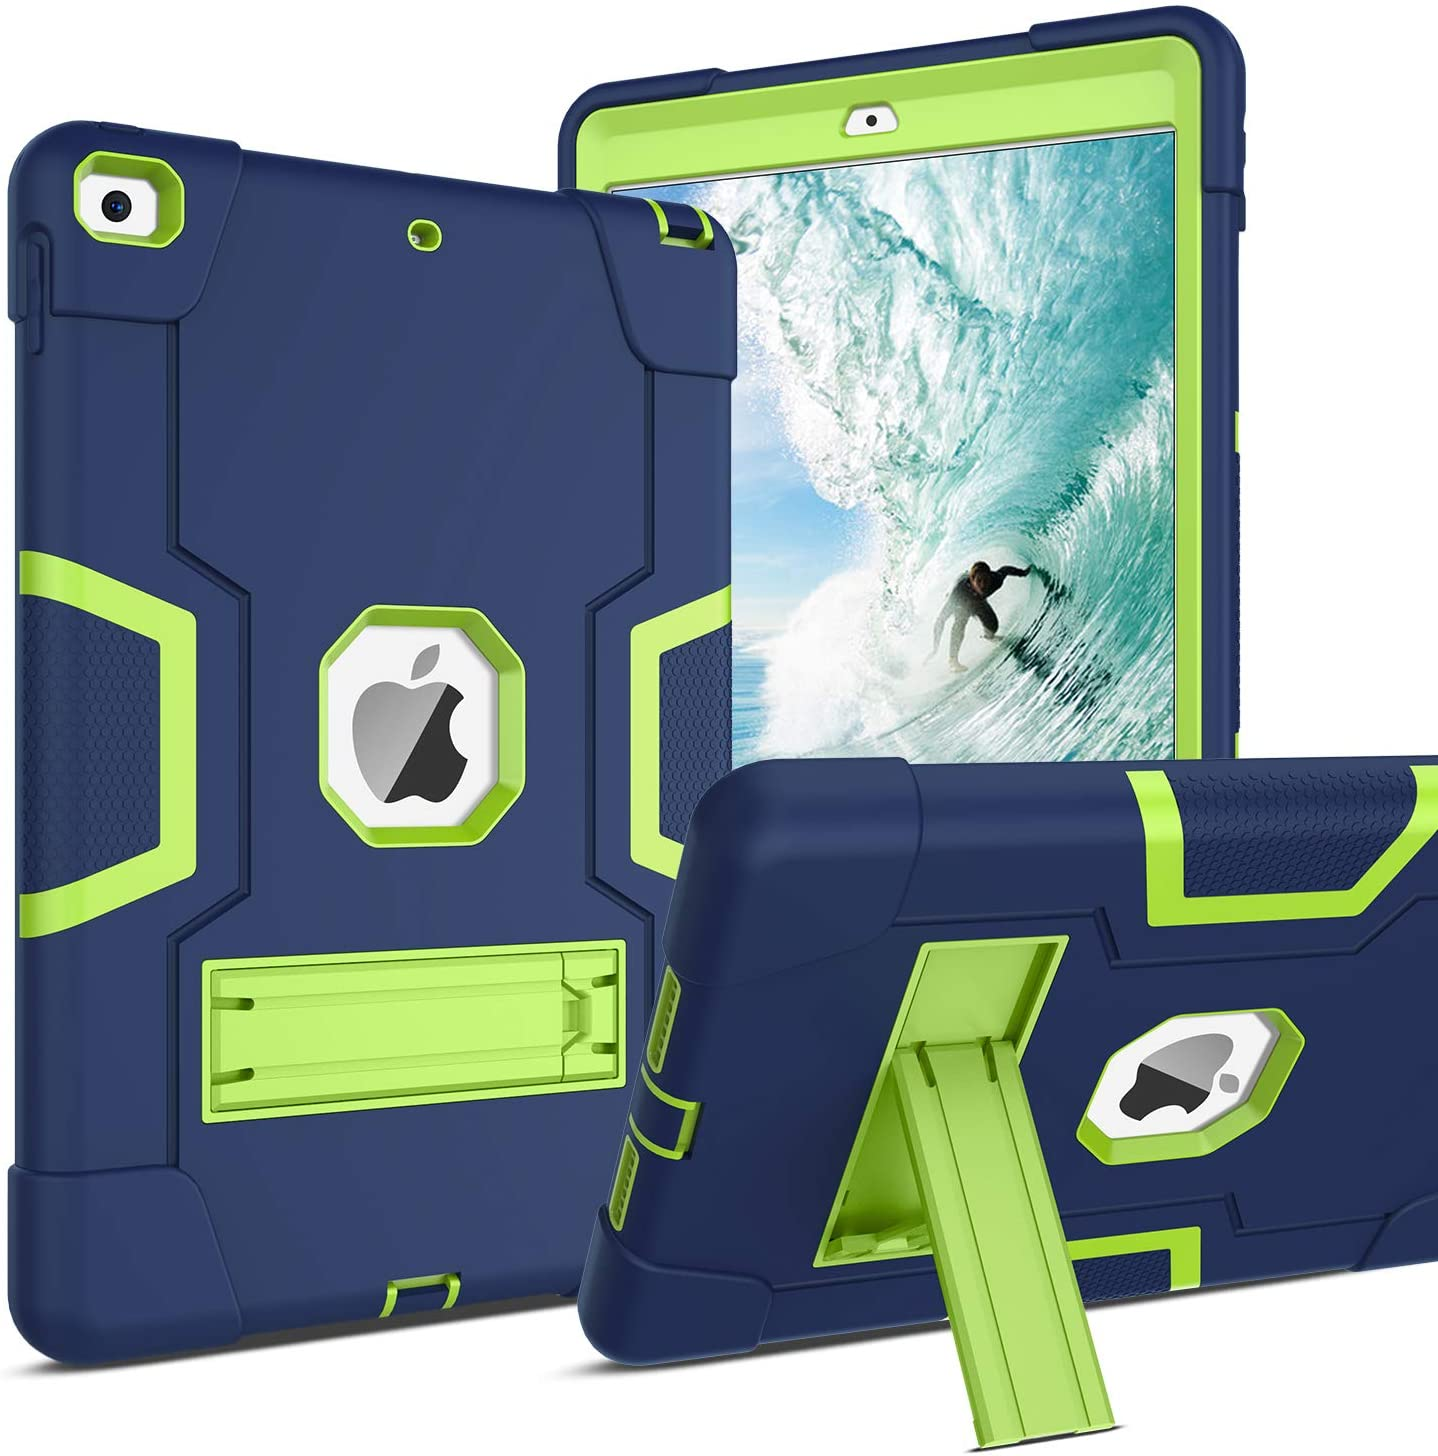 BENTOBEN iPad 7th Generation Case, New iPad 10.2 Case 2019, Hybrid Shockproof Case with Kickstand Rugged Shock Resistant Drop Proof Case Cover for iPad 10.2 inch, Navy Blue/Green